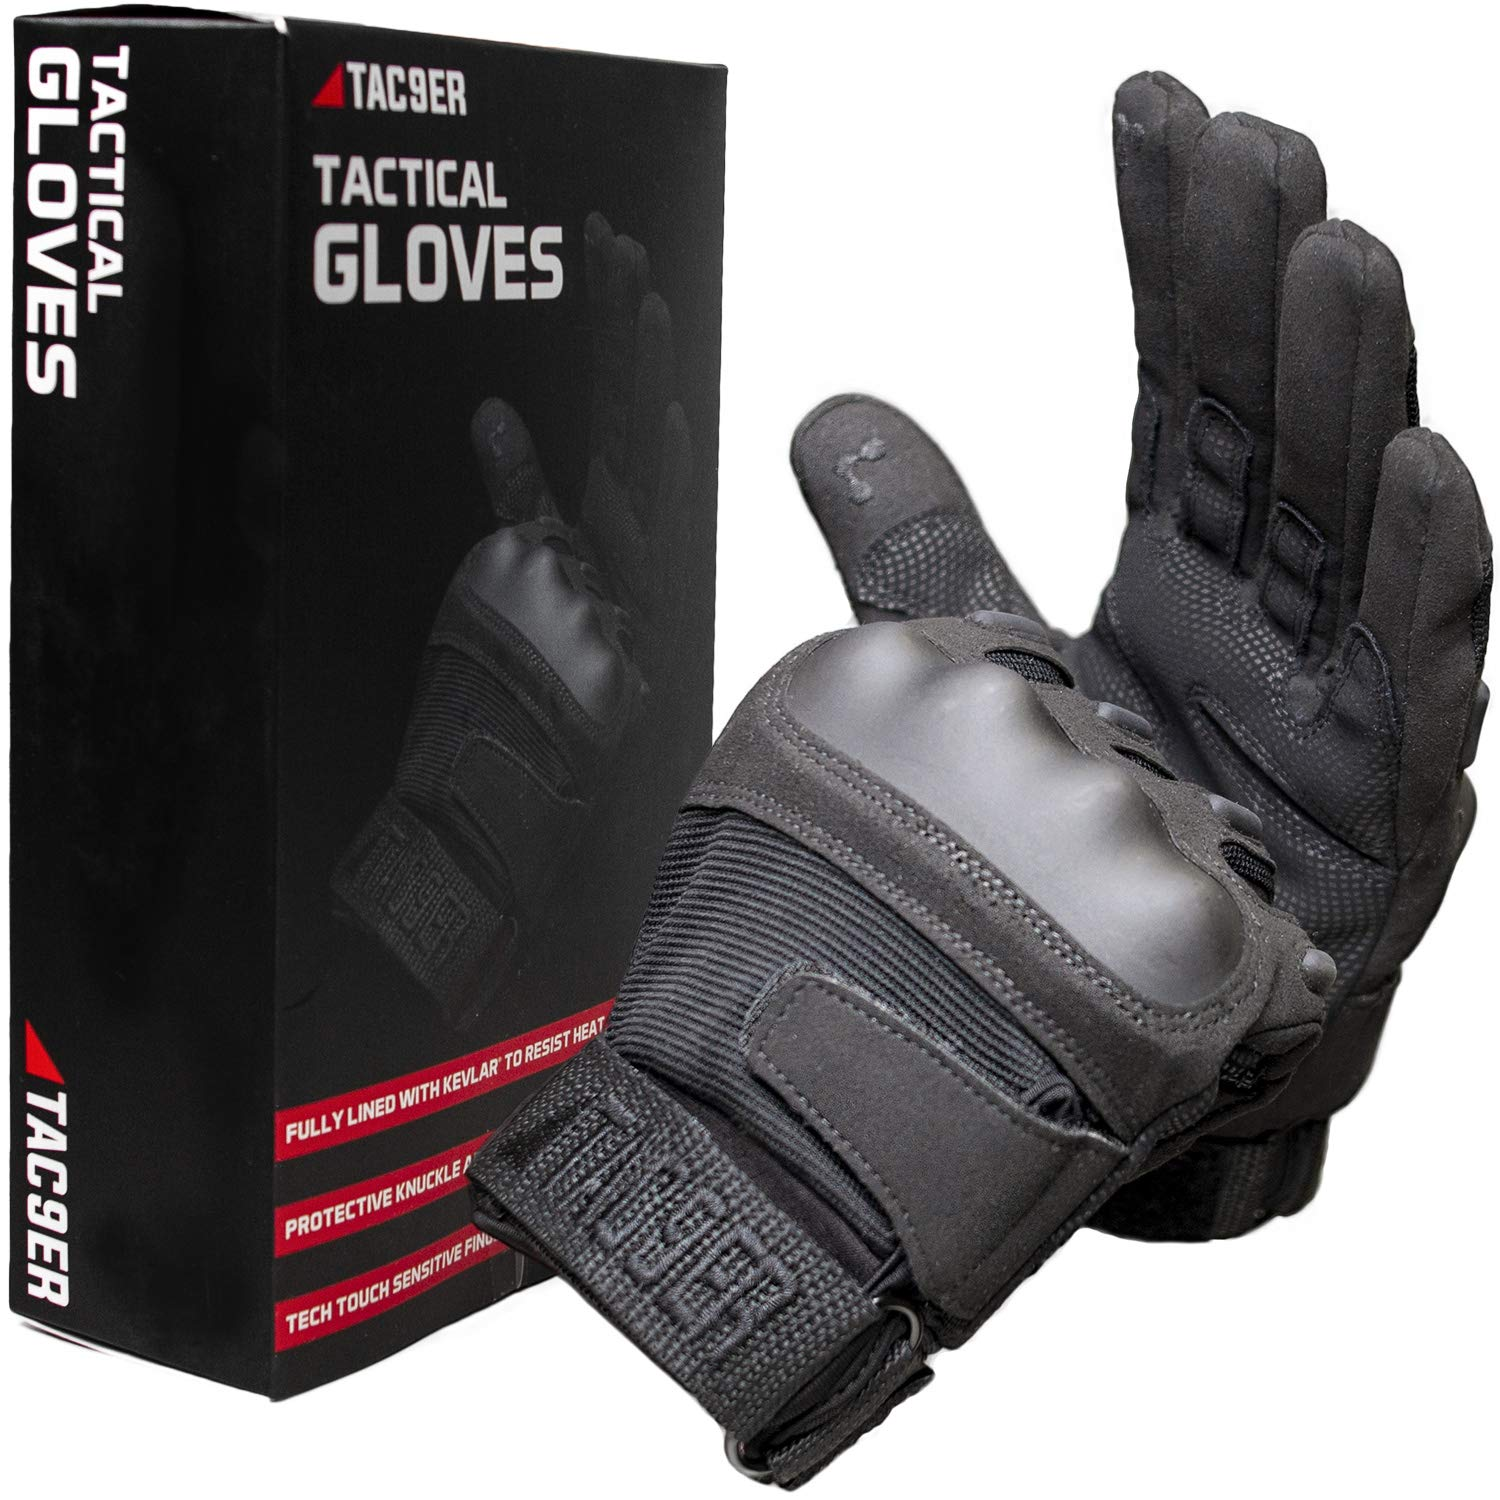 TAC9ER Military Tactical Gloves with Kevlar - Hand Protection Airsoft  Gloves with Cut and Heat Resistant, Armored Knuckles, Touchscreen Finger